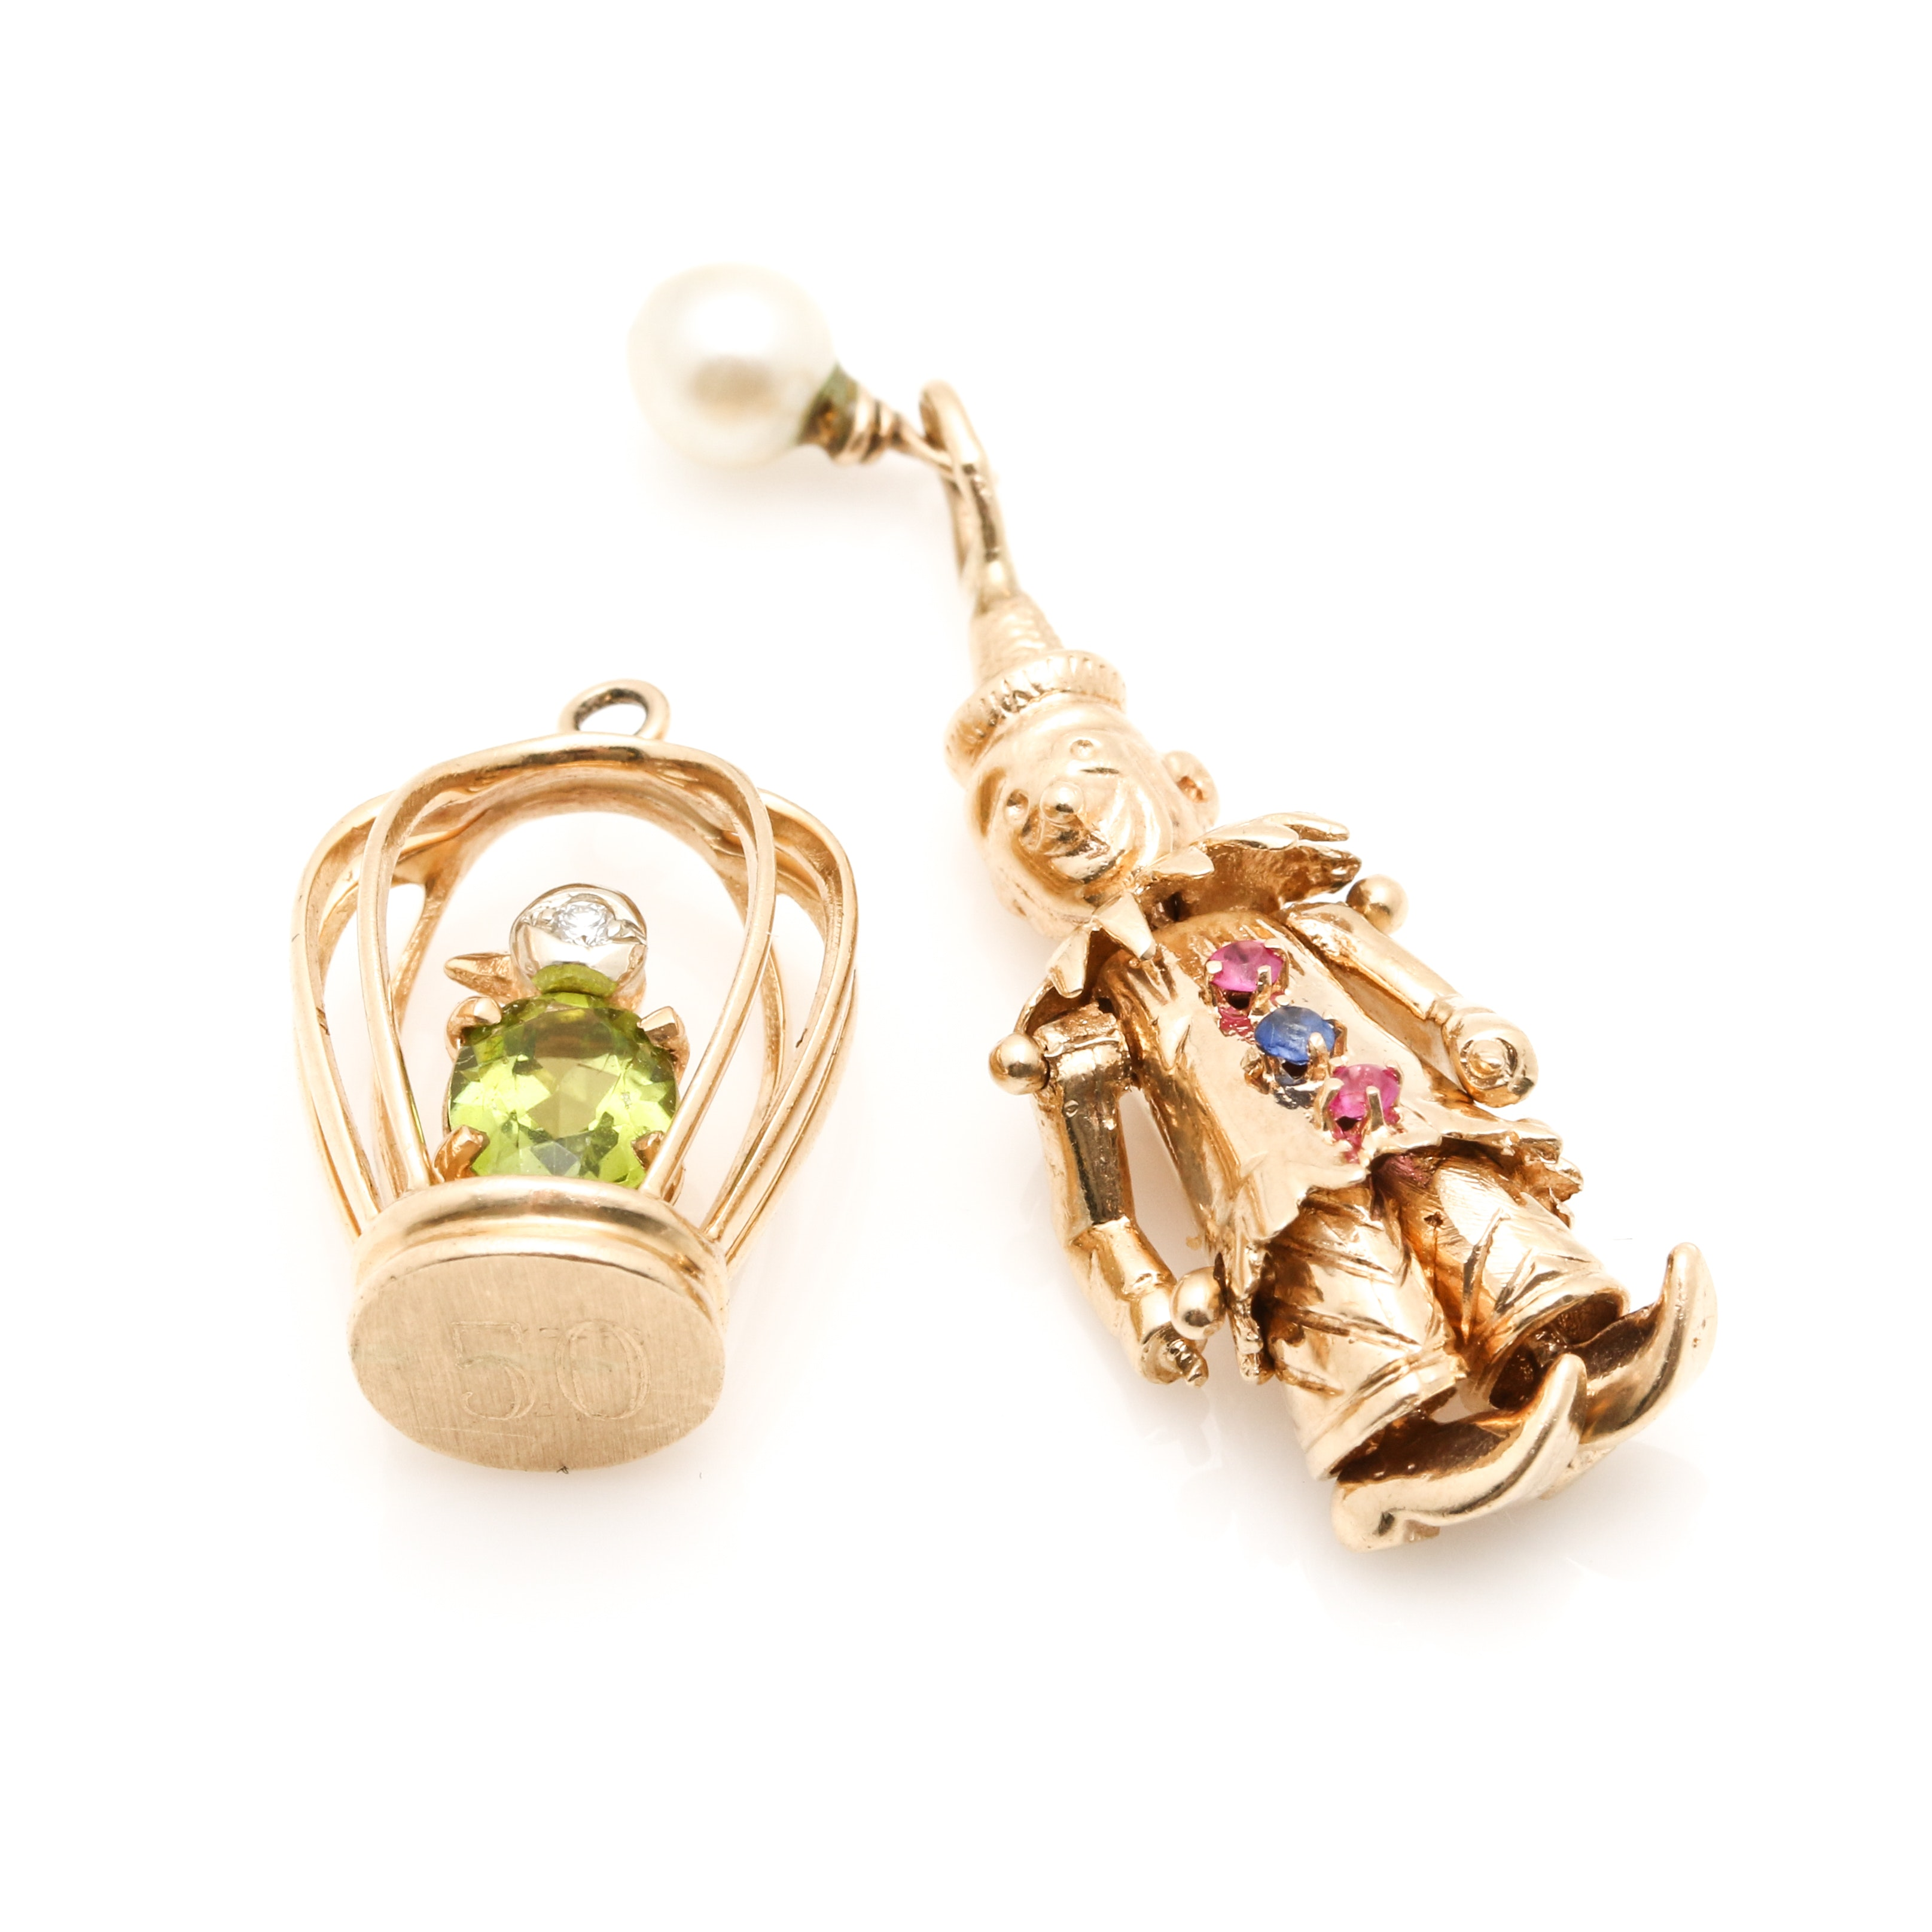 14K Yellow Gold Diamond and Gemstone Figural Charms